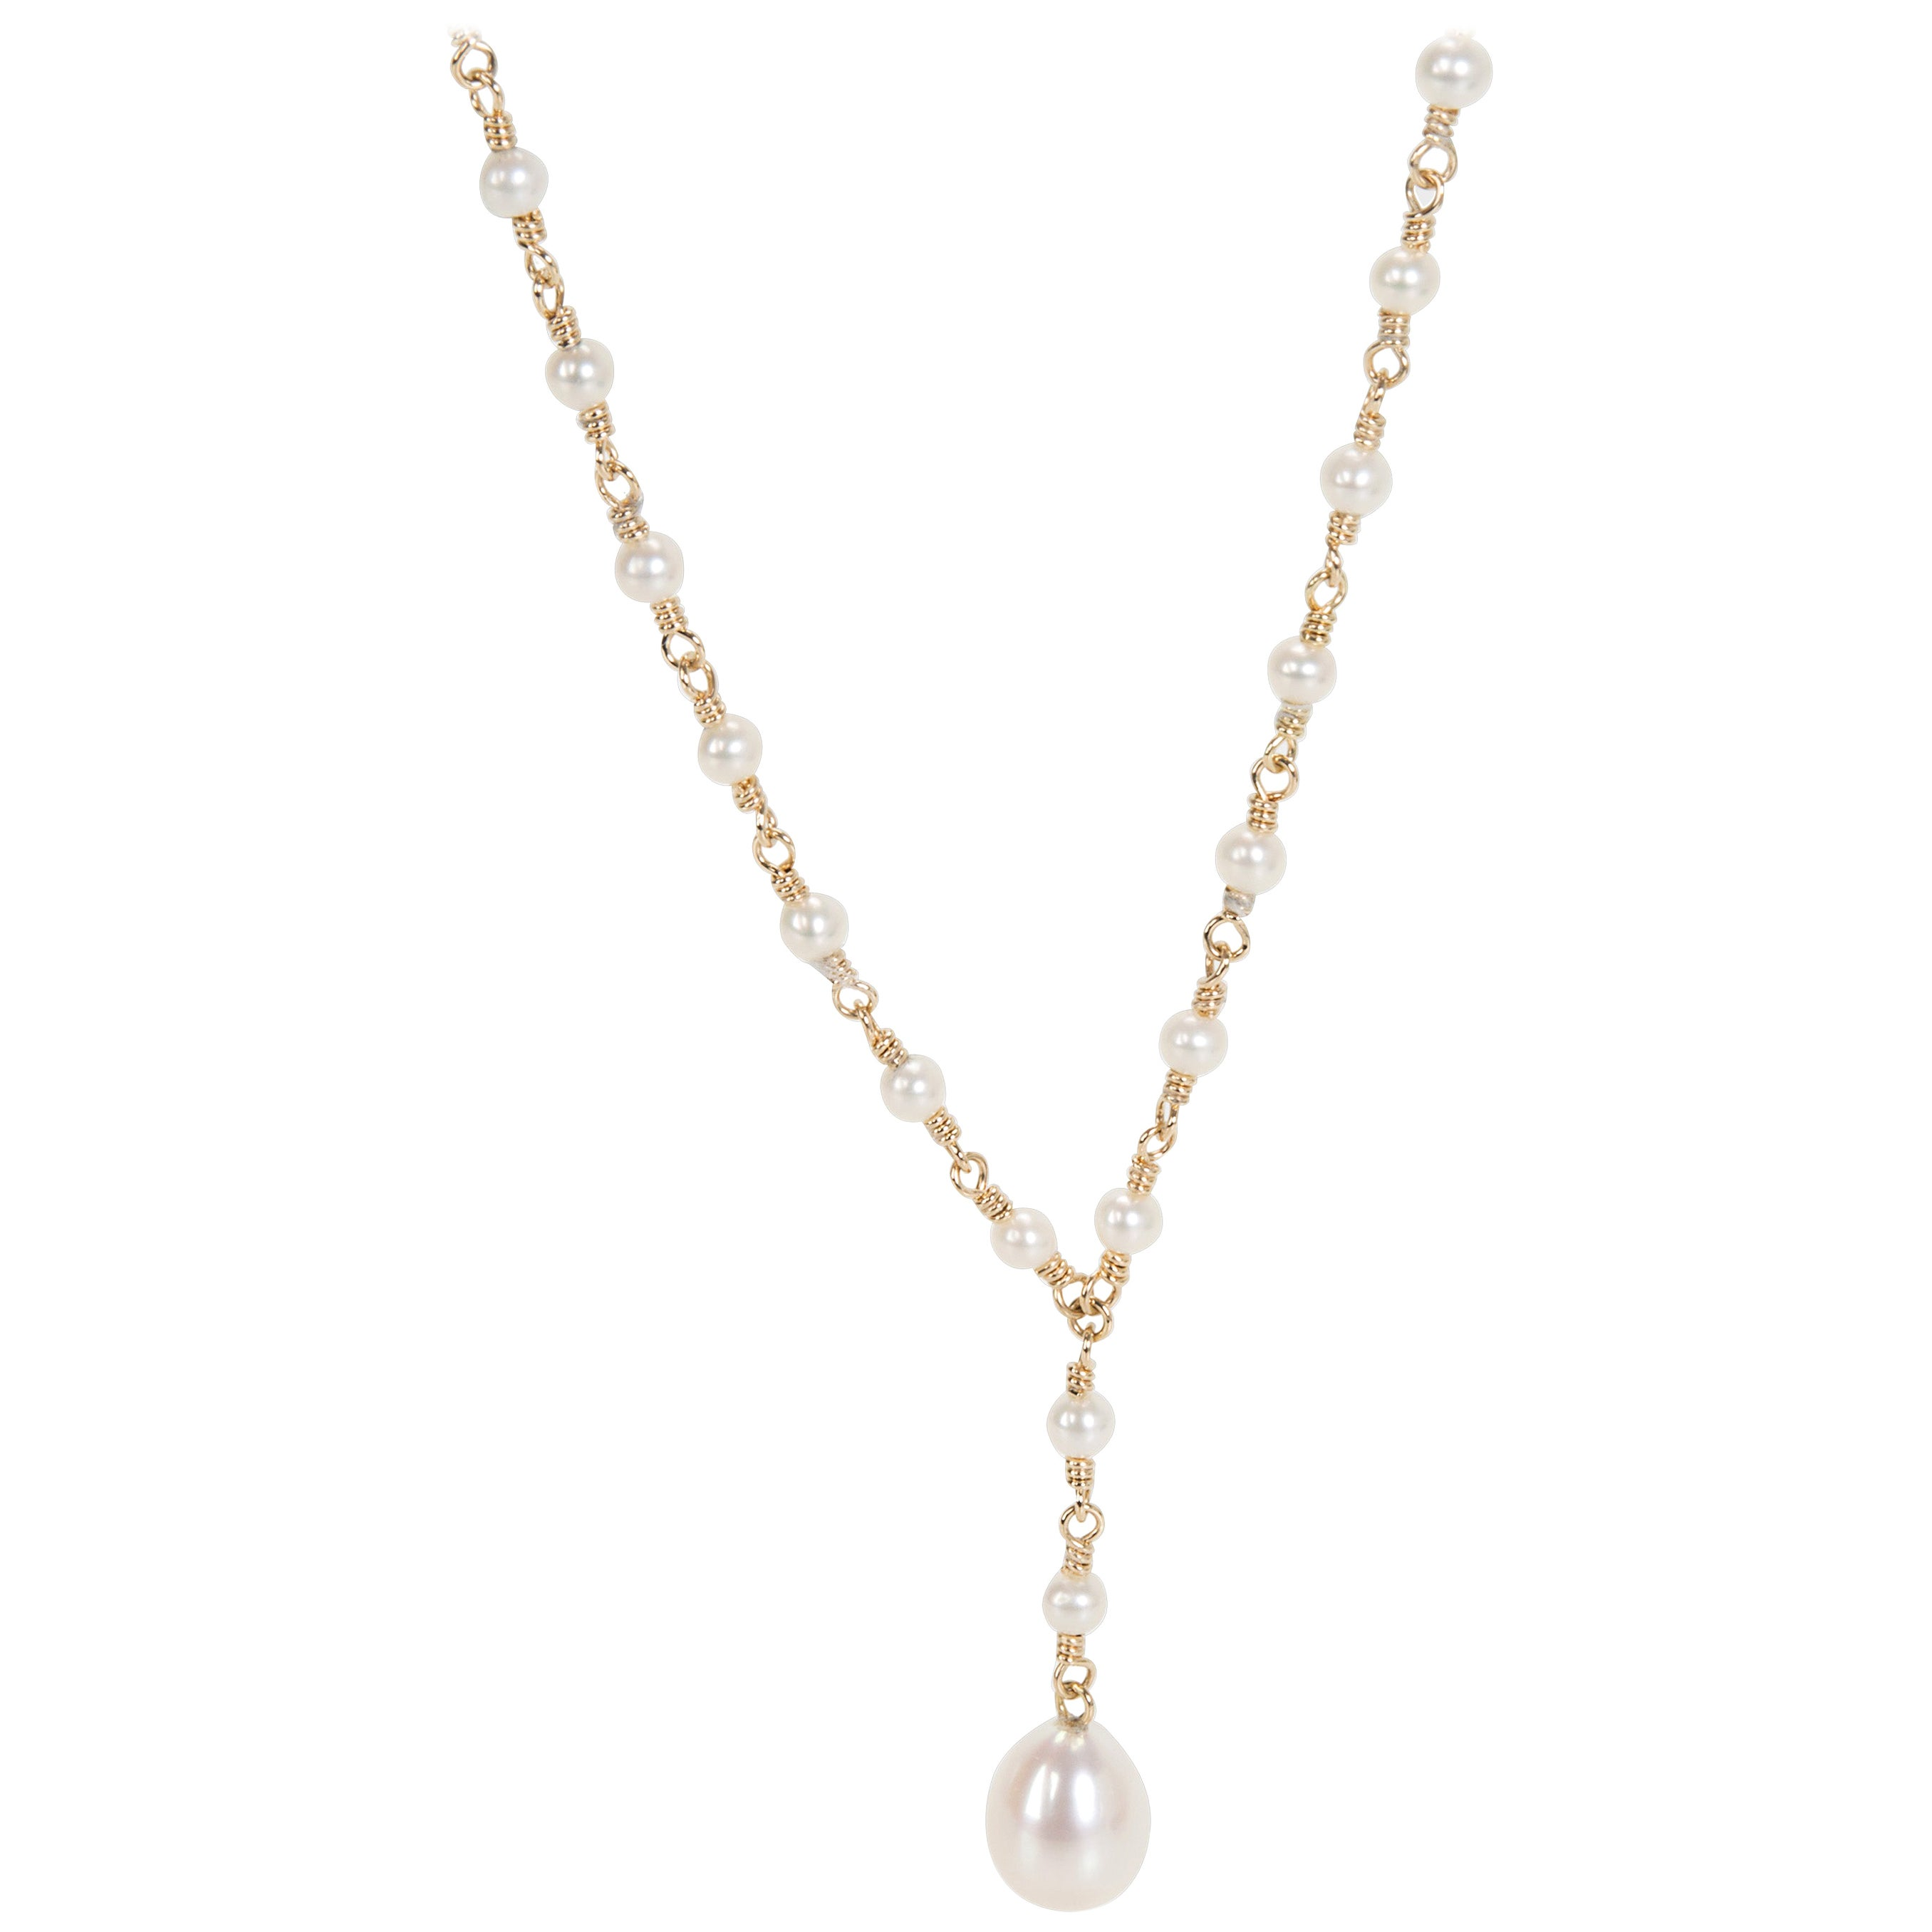 Tiffany & Co. Pearl Necklace in 18 Karat Yellow Gold